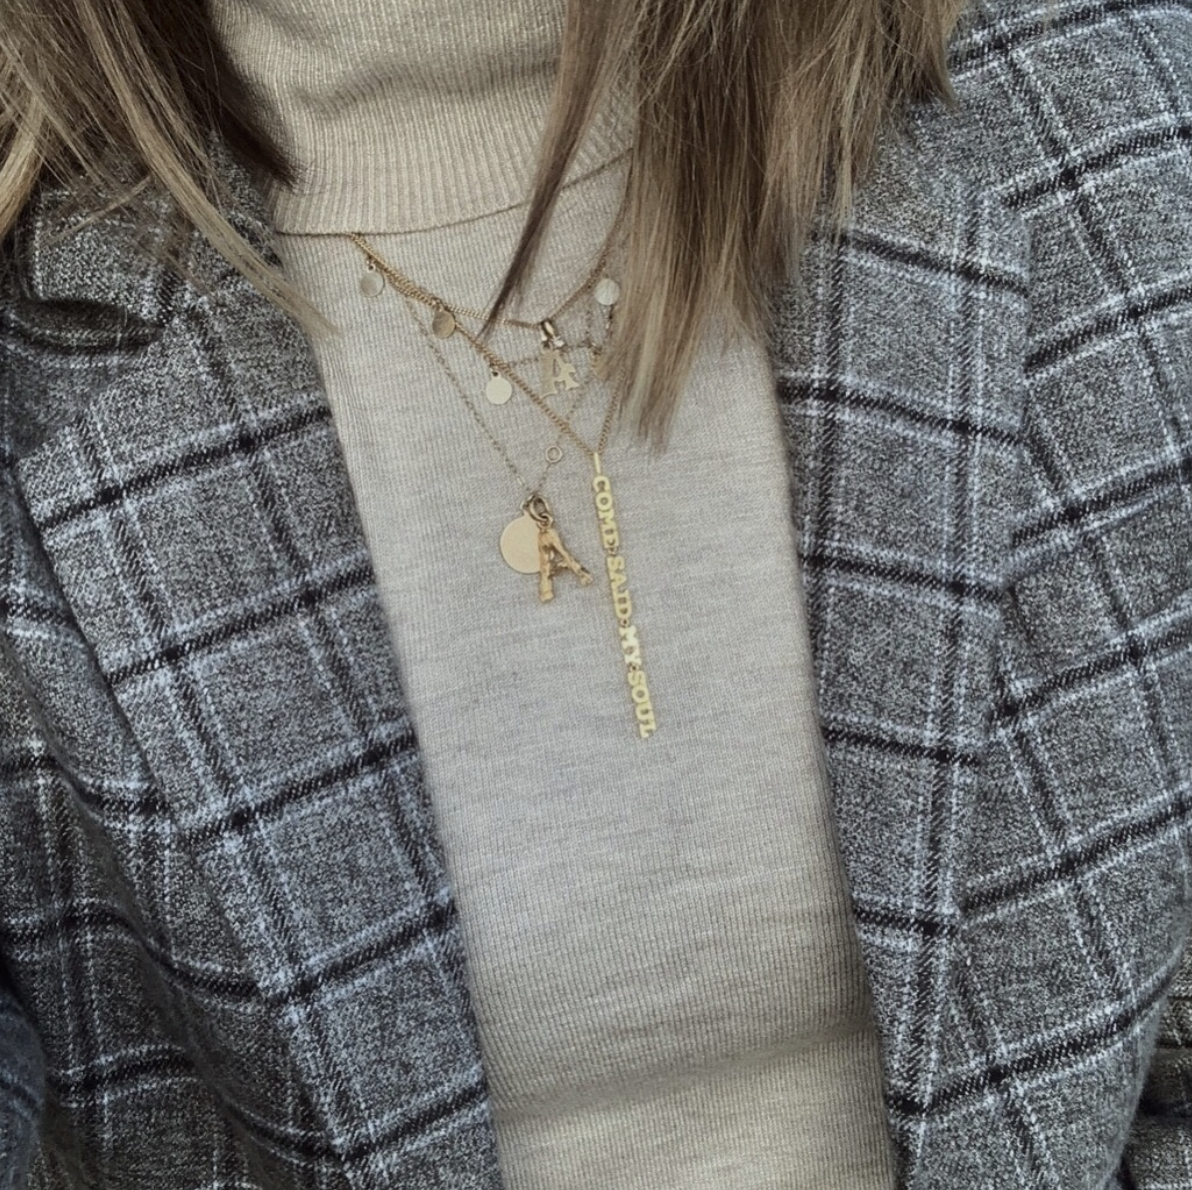 Angelina  from Paris wears it in 18K gold, see her Instagram feature  here